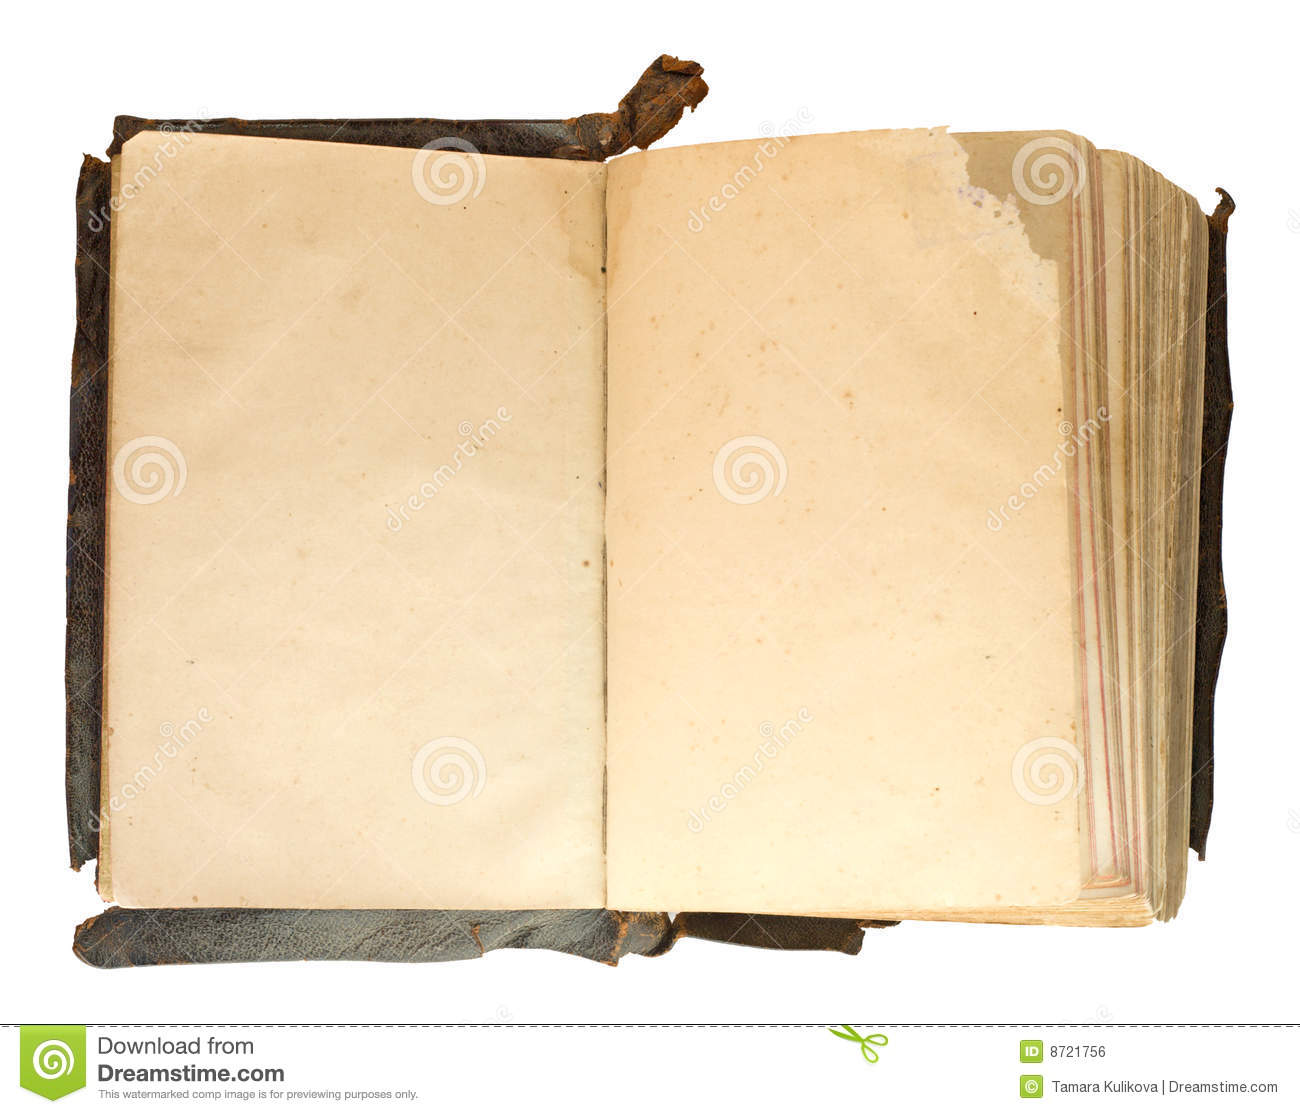 Old Notebook old notebook stock photos - image: 15241253